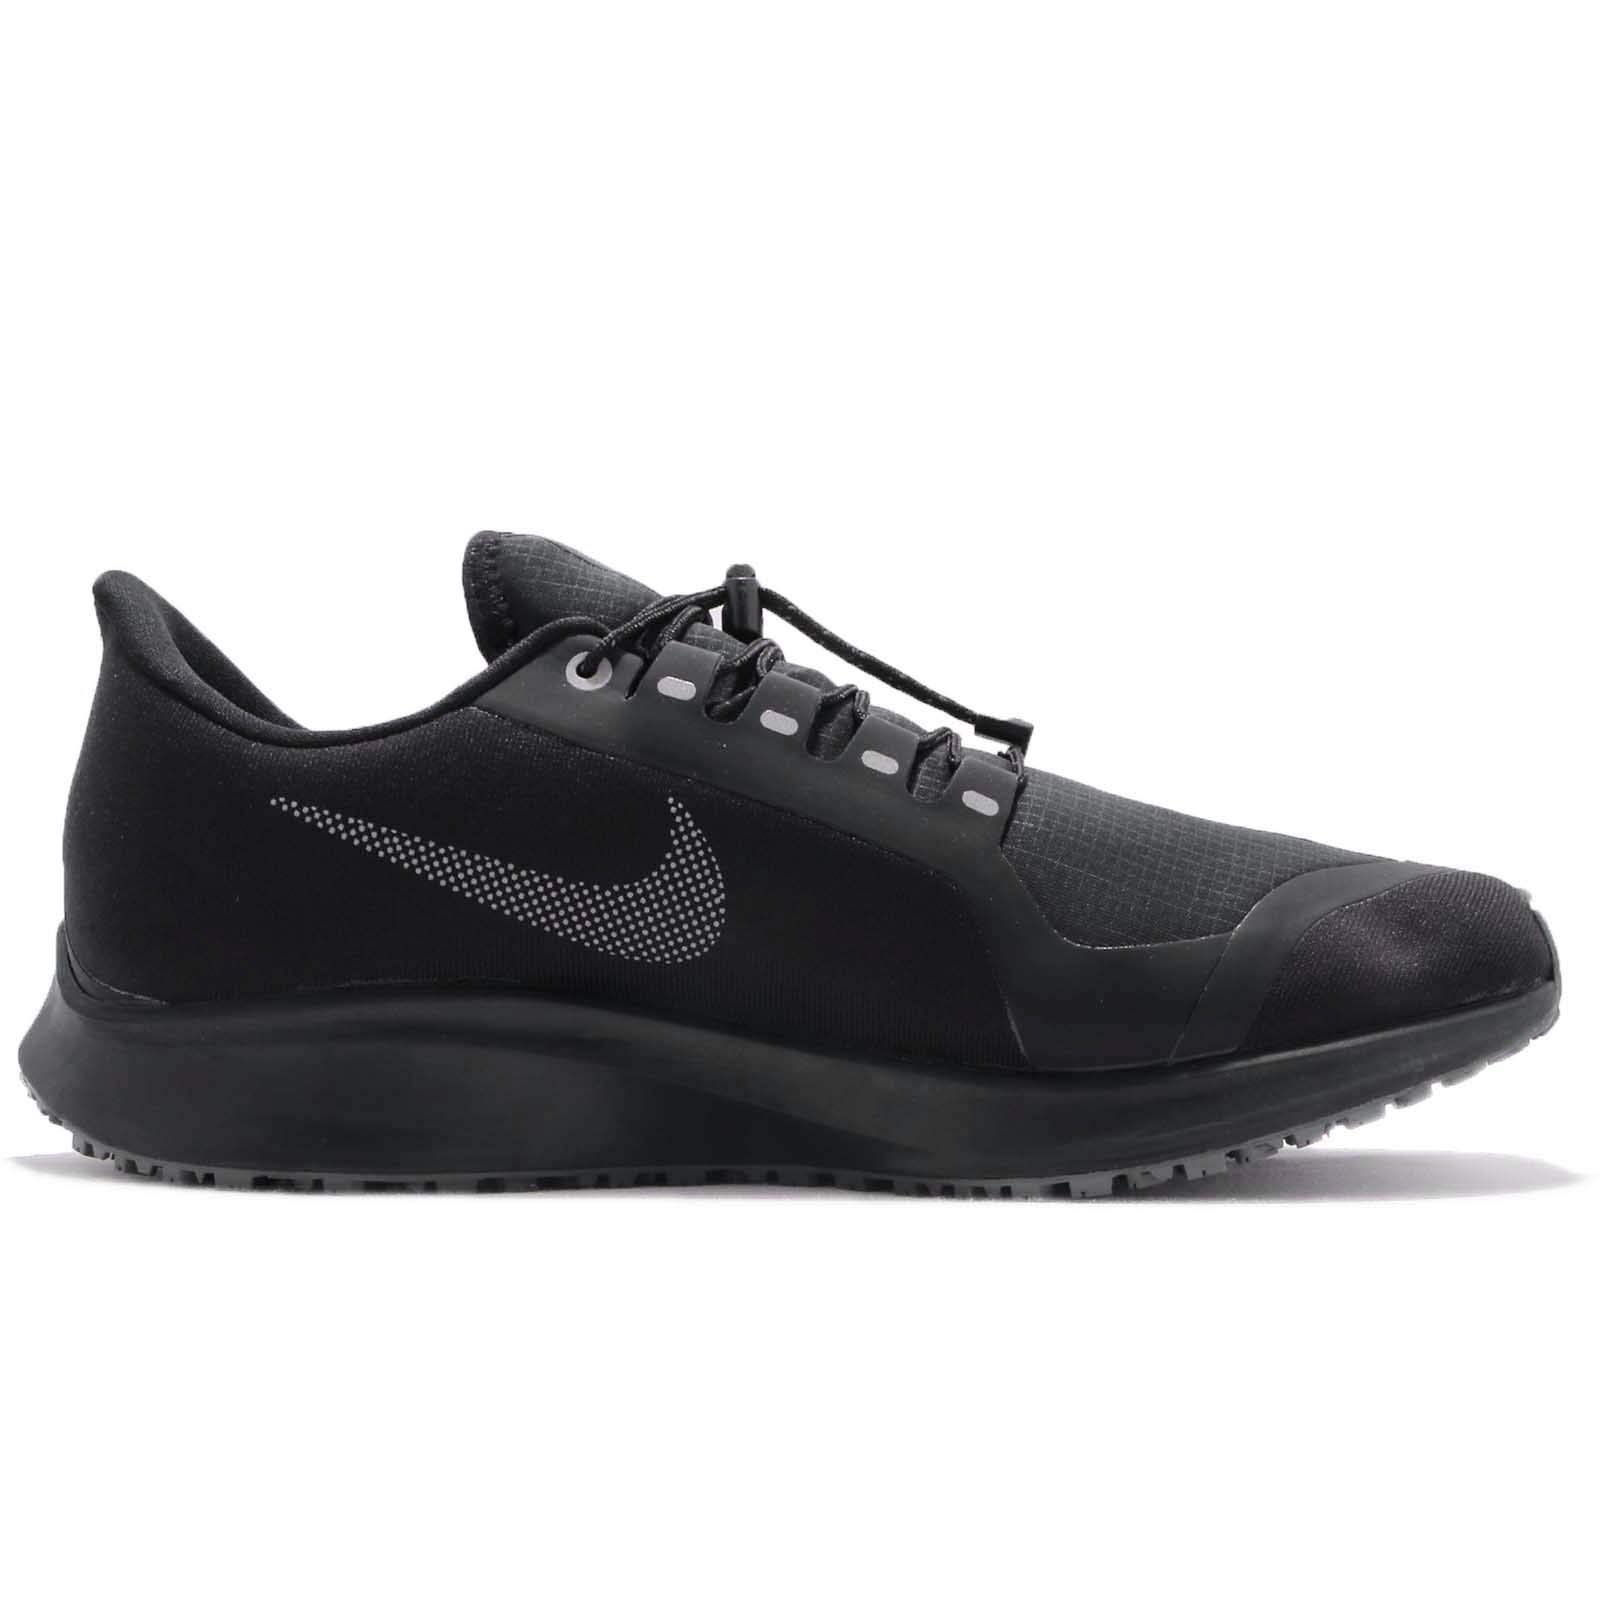 Nike Mens Air Zoom Pegasus 35 Shield Running Shoes, Black/Metallic Silver-Night Maroon